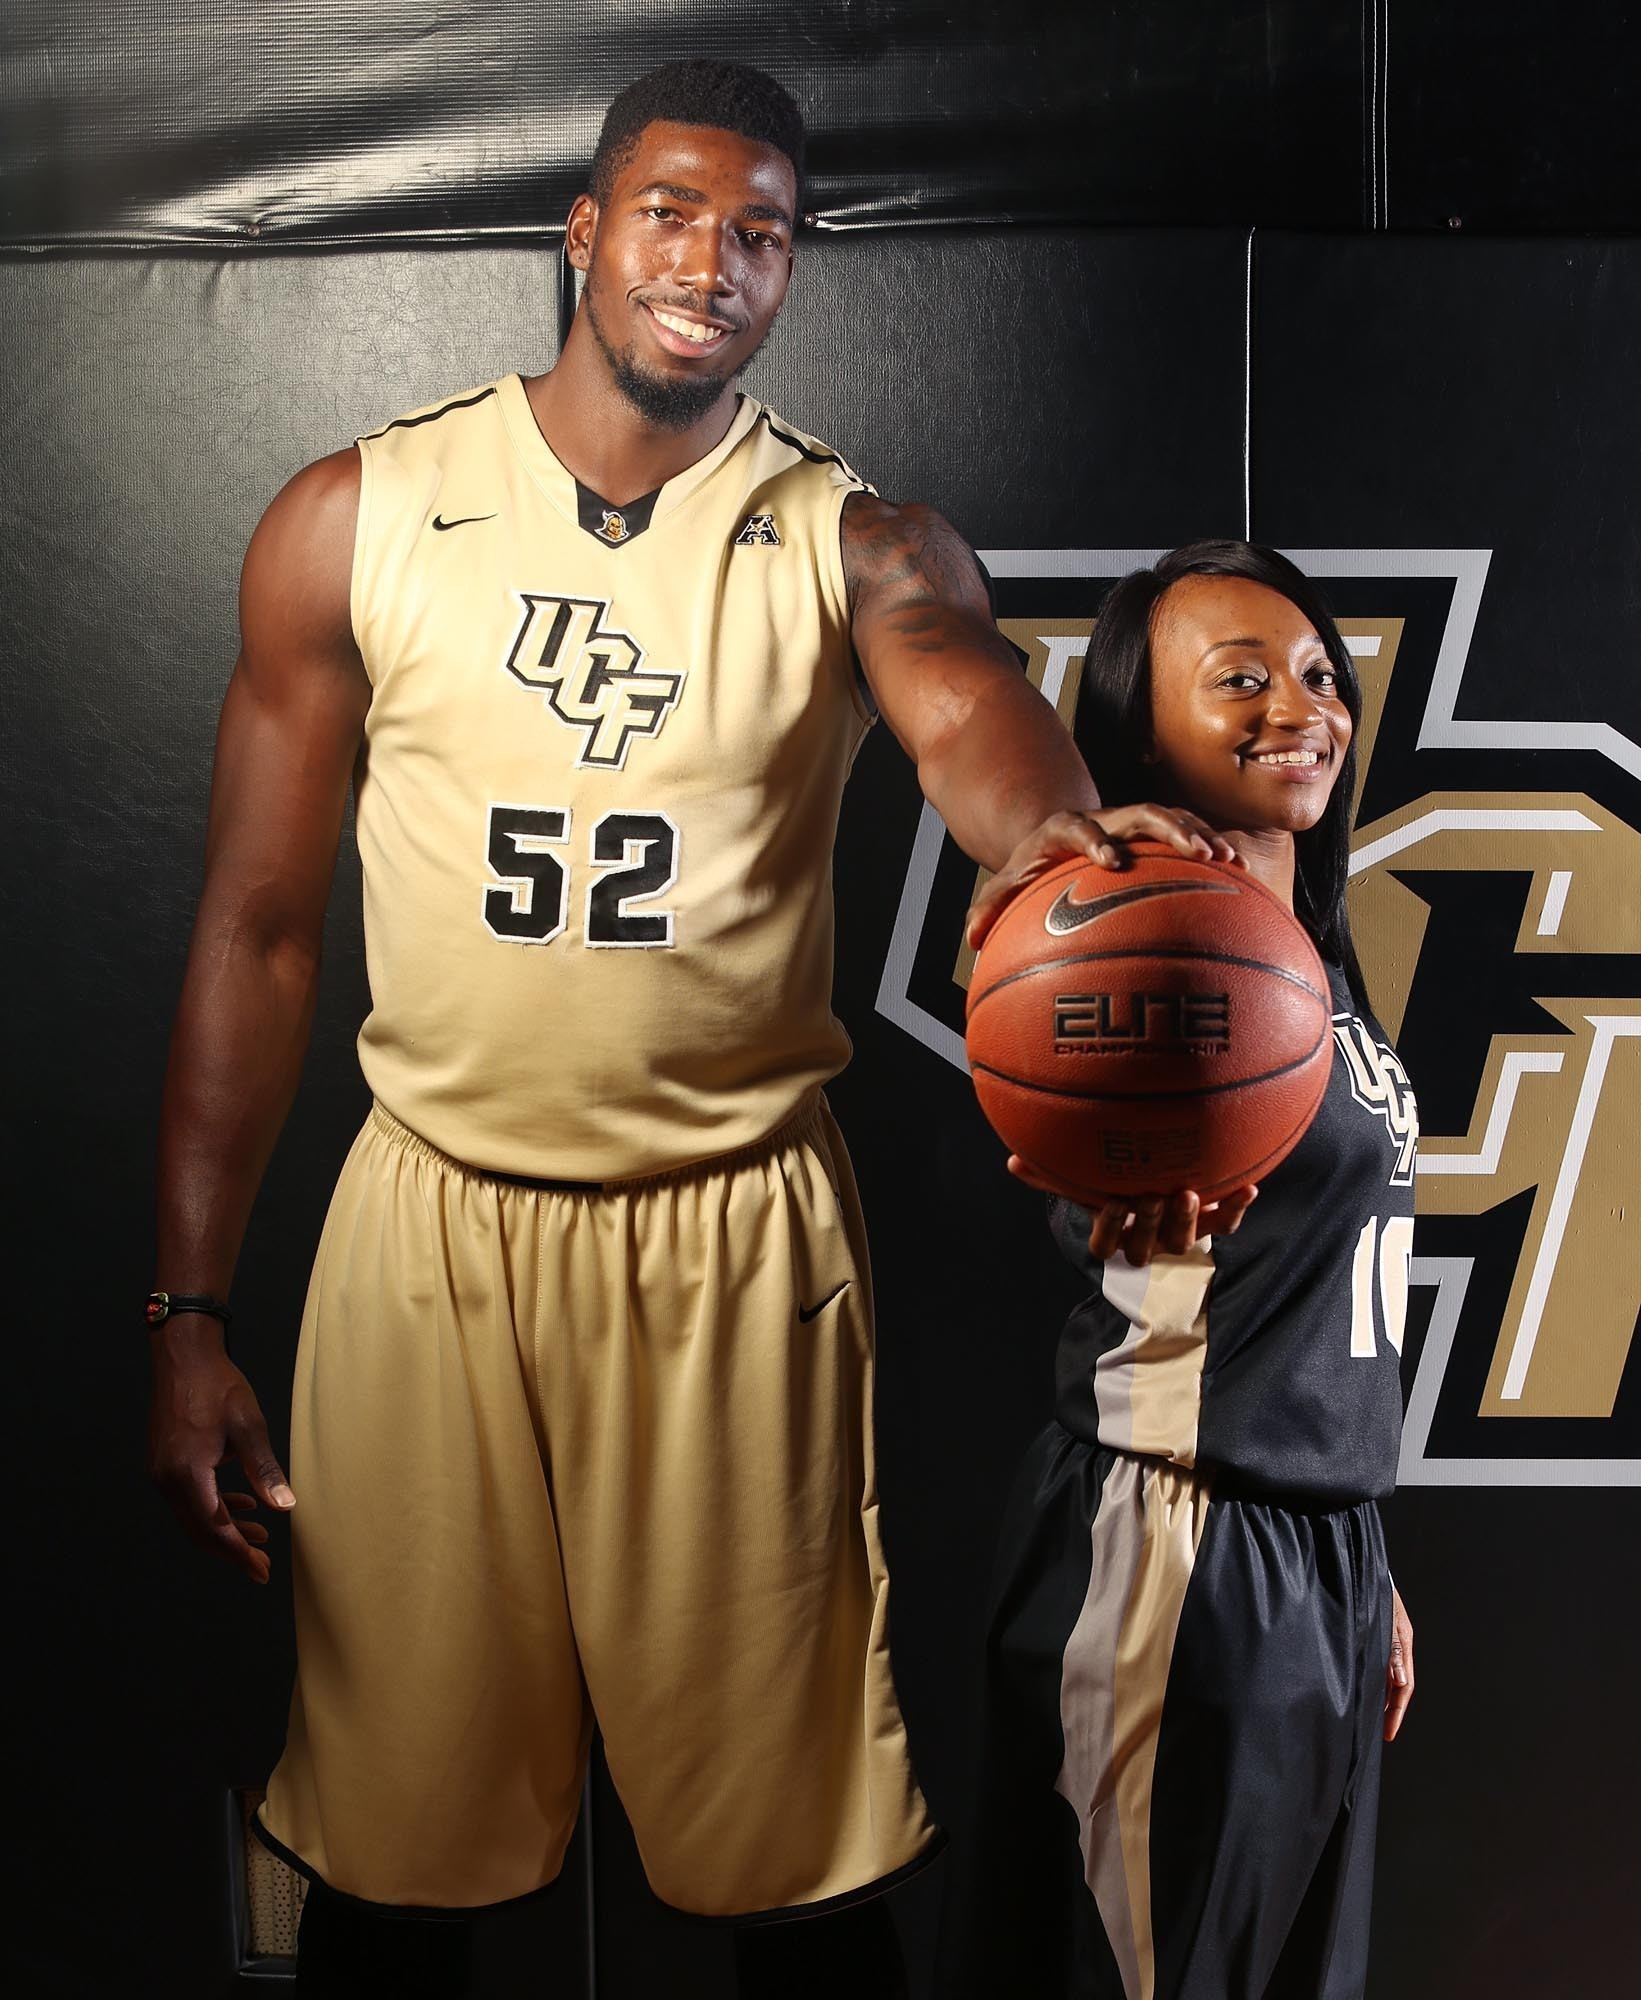 Knight Basketball Player Wallpaper: UCF Staphon Blair: Five Fun Questions